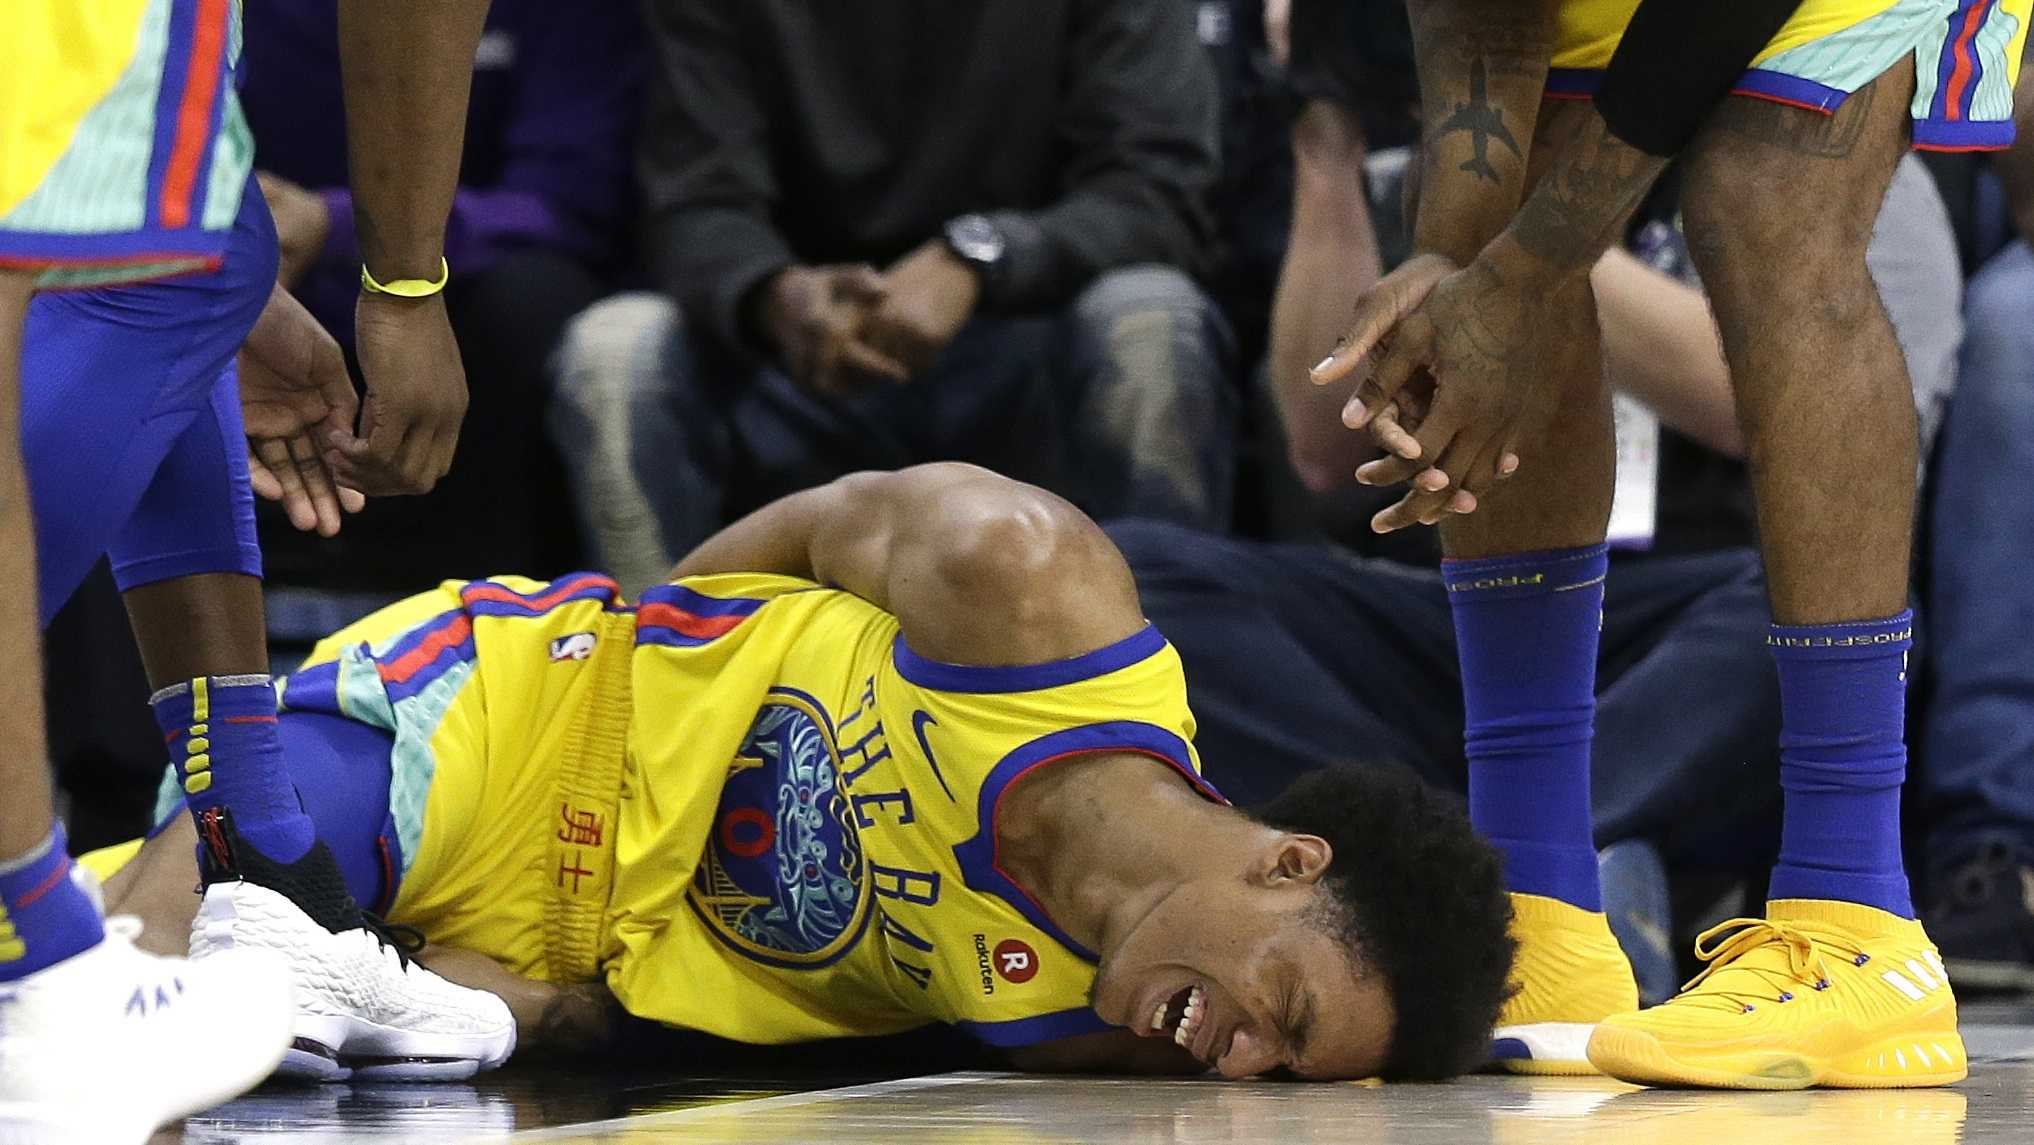 Golden State Warriors guard Patrick McCaw lays on the court in pain after falling hard to the floor late in the third quarter following a Flagrant 1 foul by Sacramento Kings's Vince Carter in an NBA basketball game Saturday, March 31, 2018, in Sacramento, Calif. McCaw was taken off the court on a stretcher.